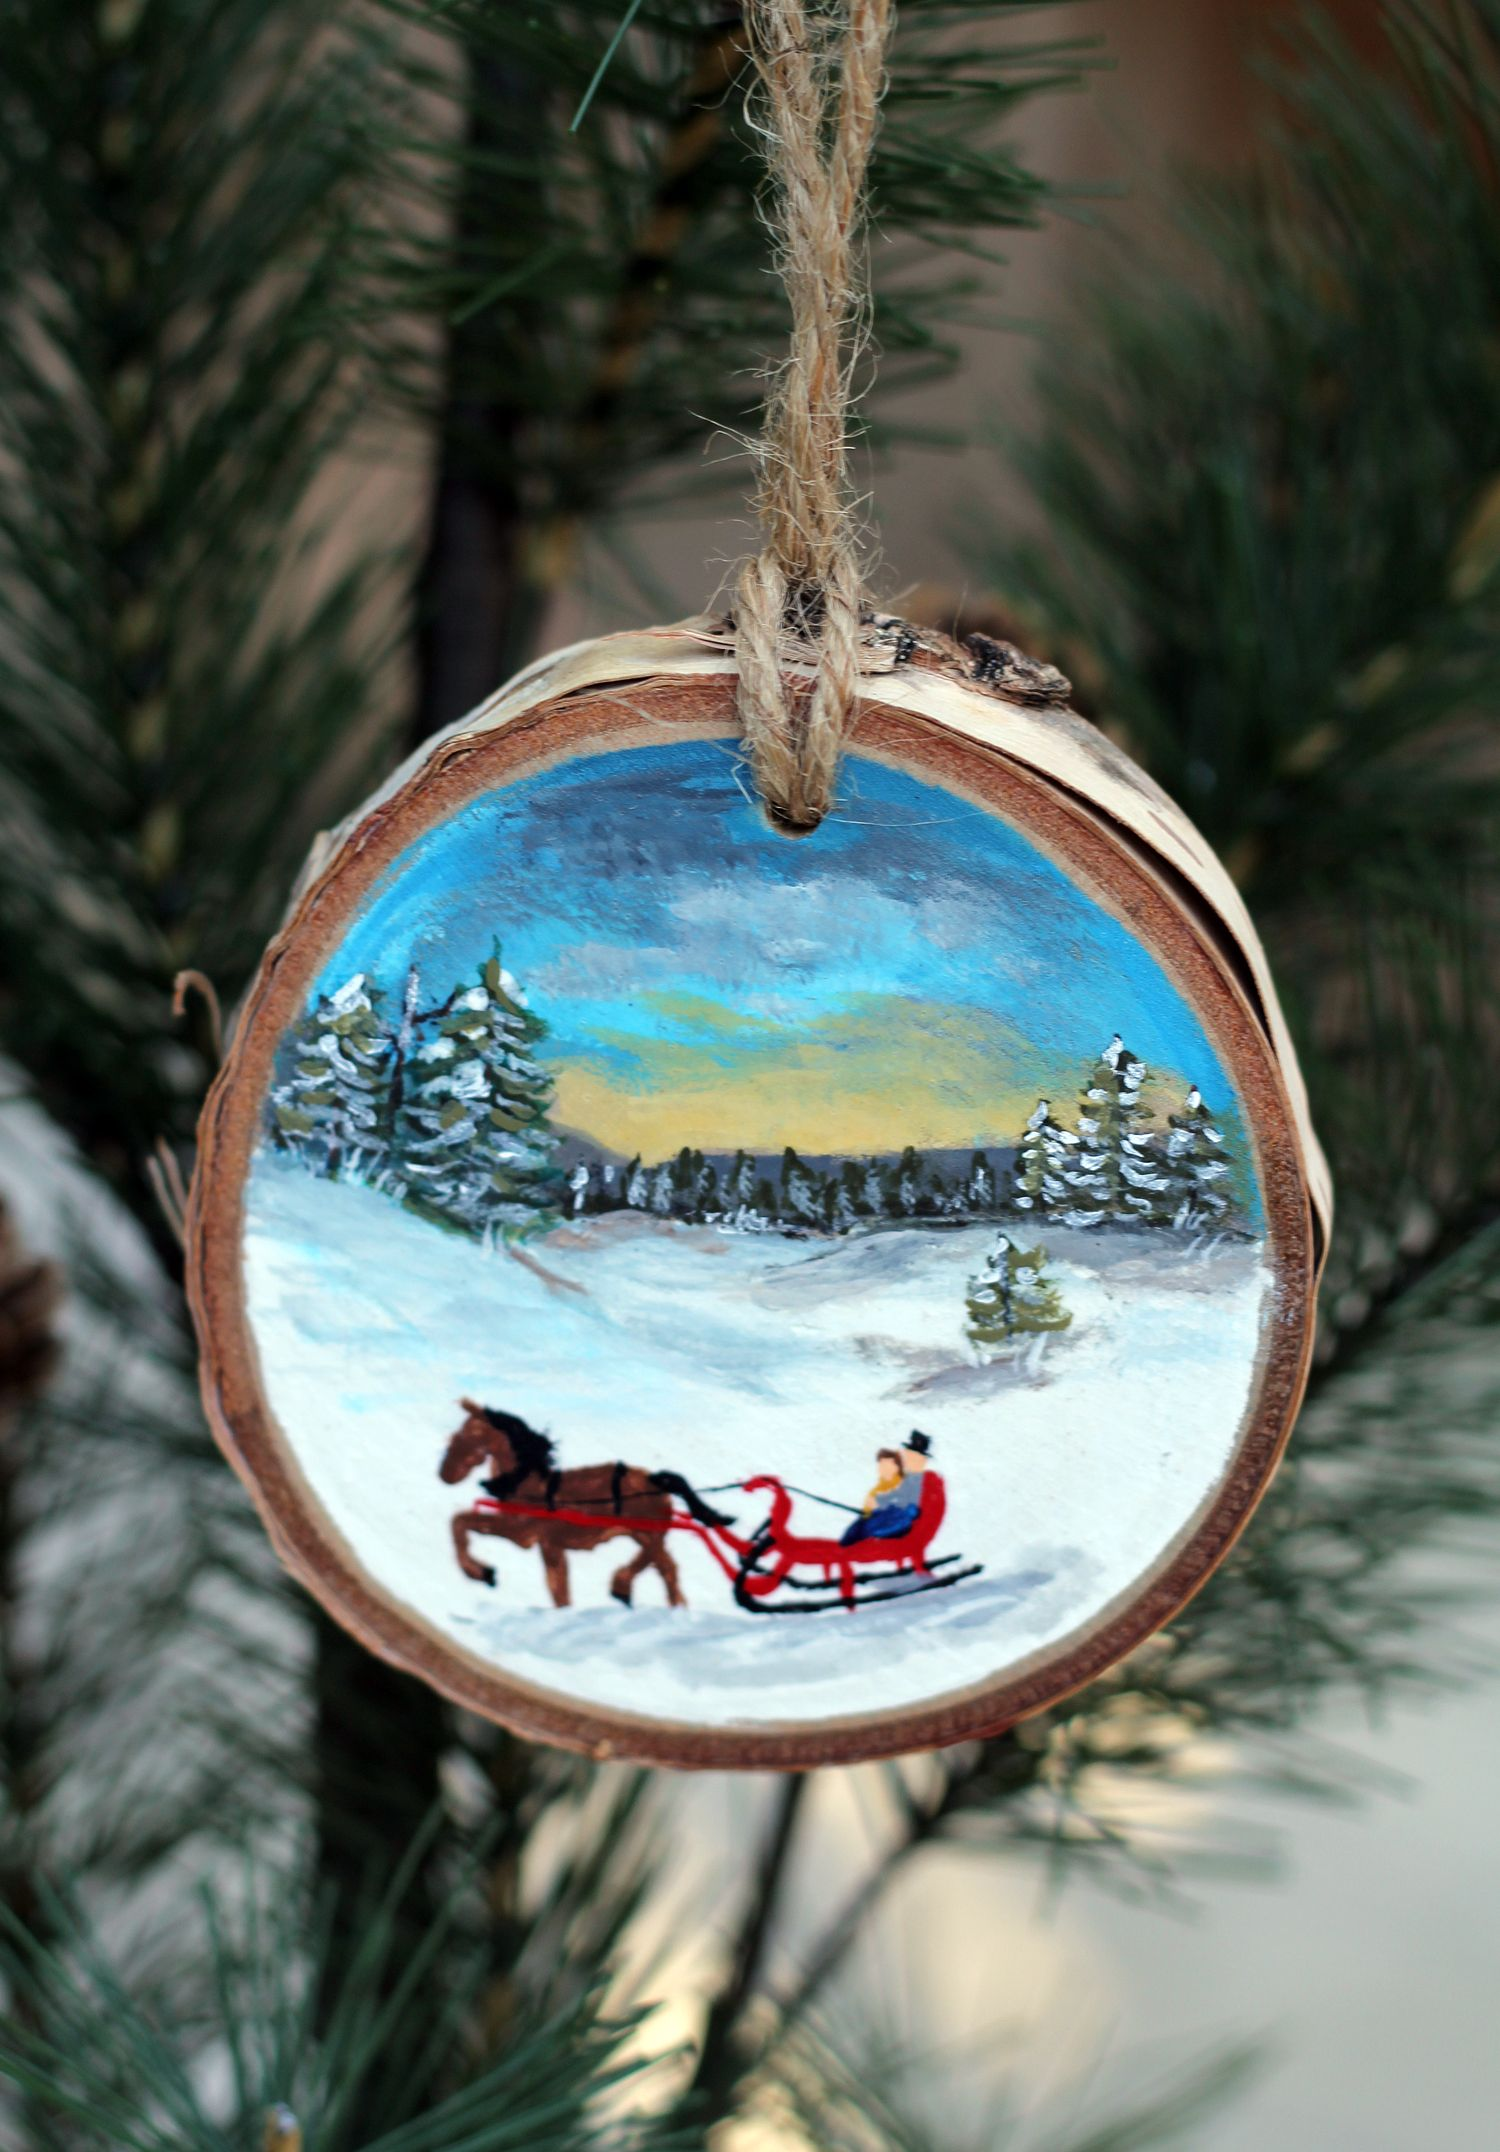 One Horse Open Sleigh Ornament Christmas Ornaments Christmas Paintings Wood Ornaments